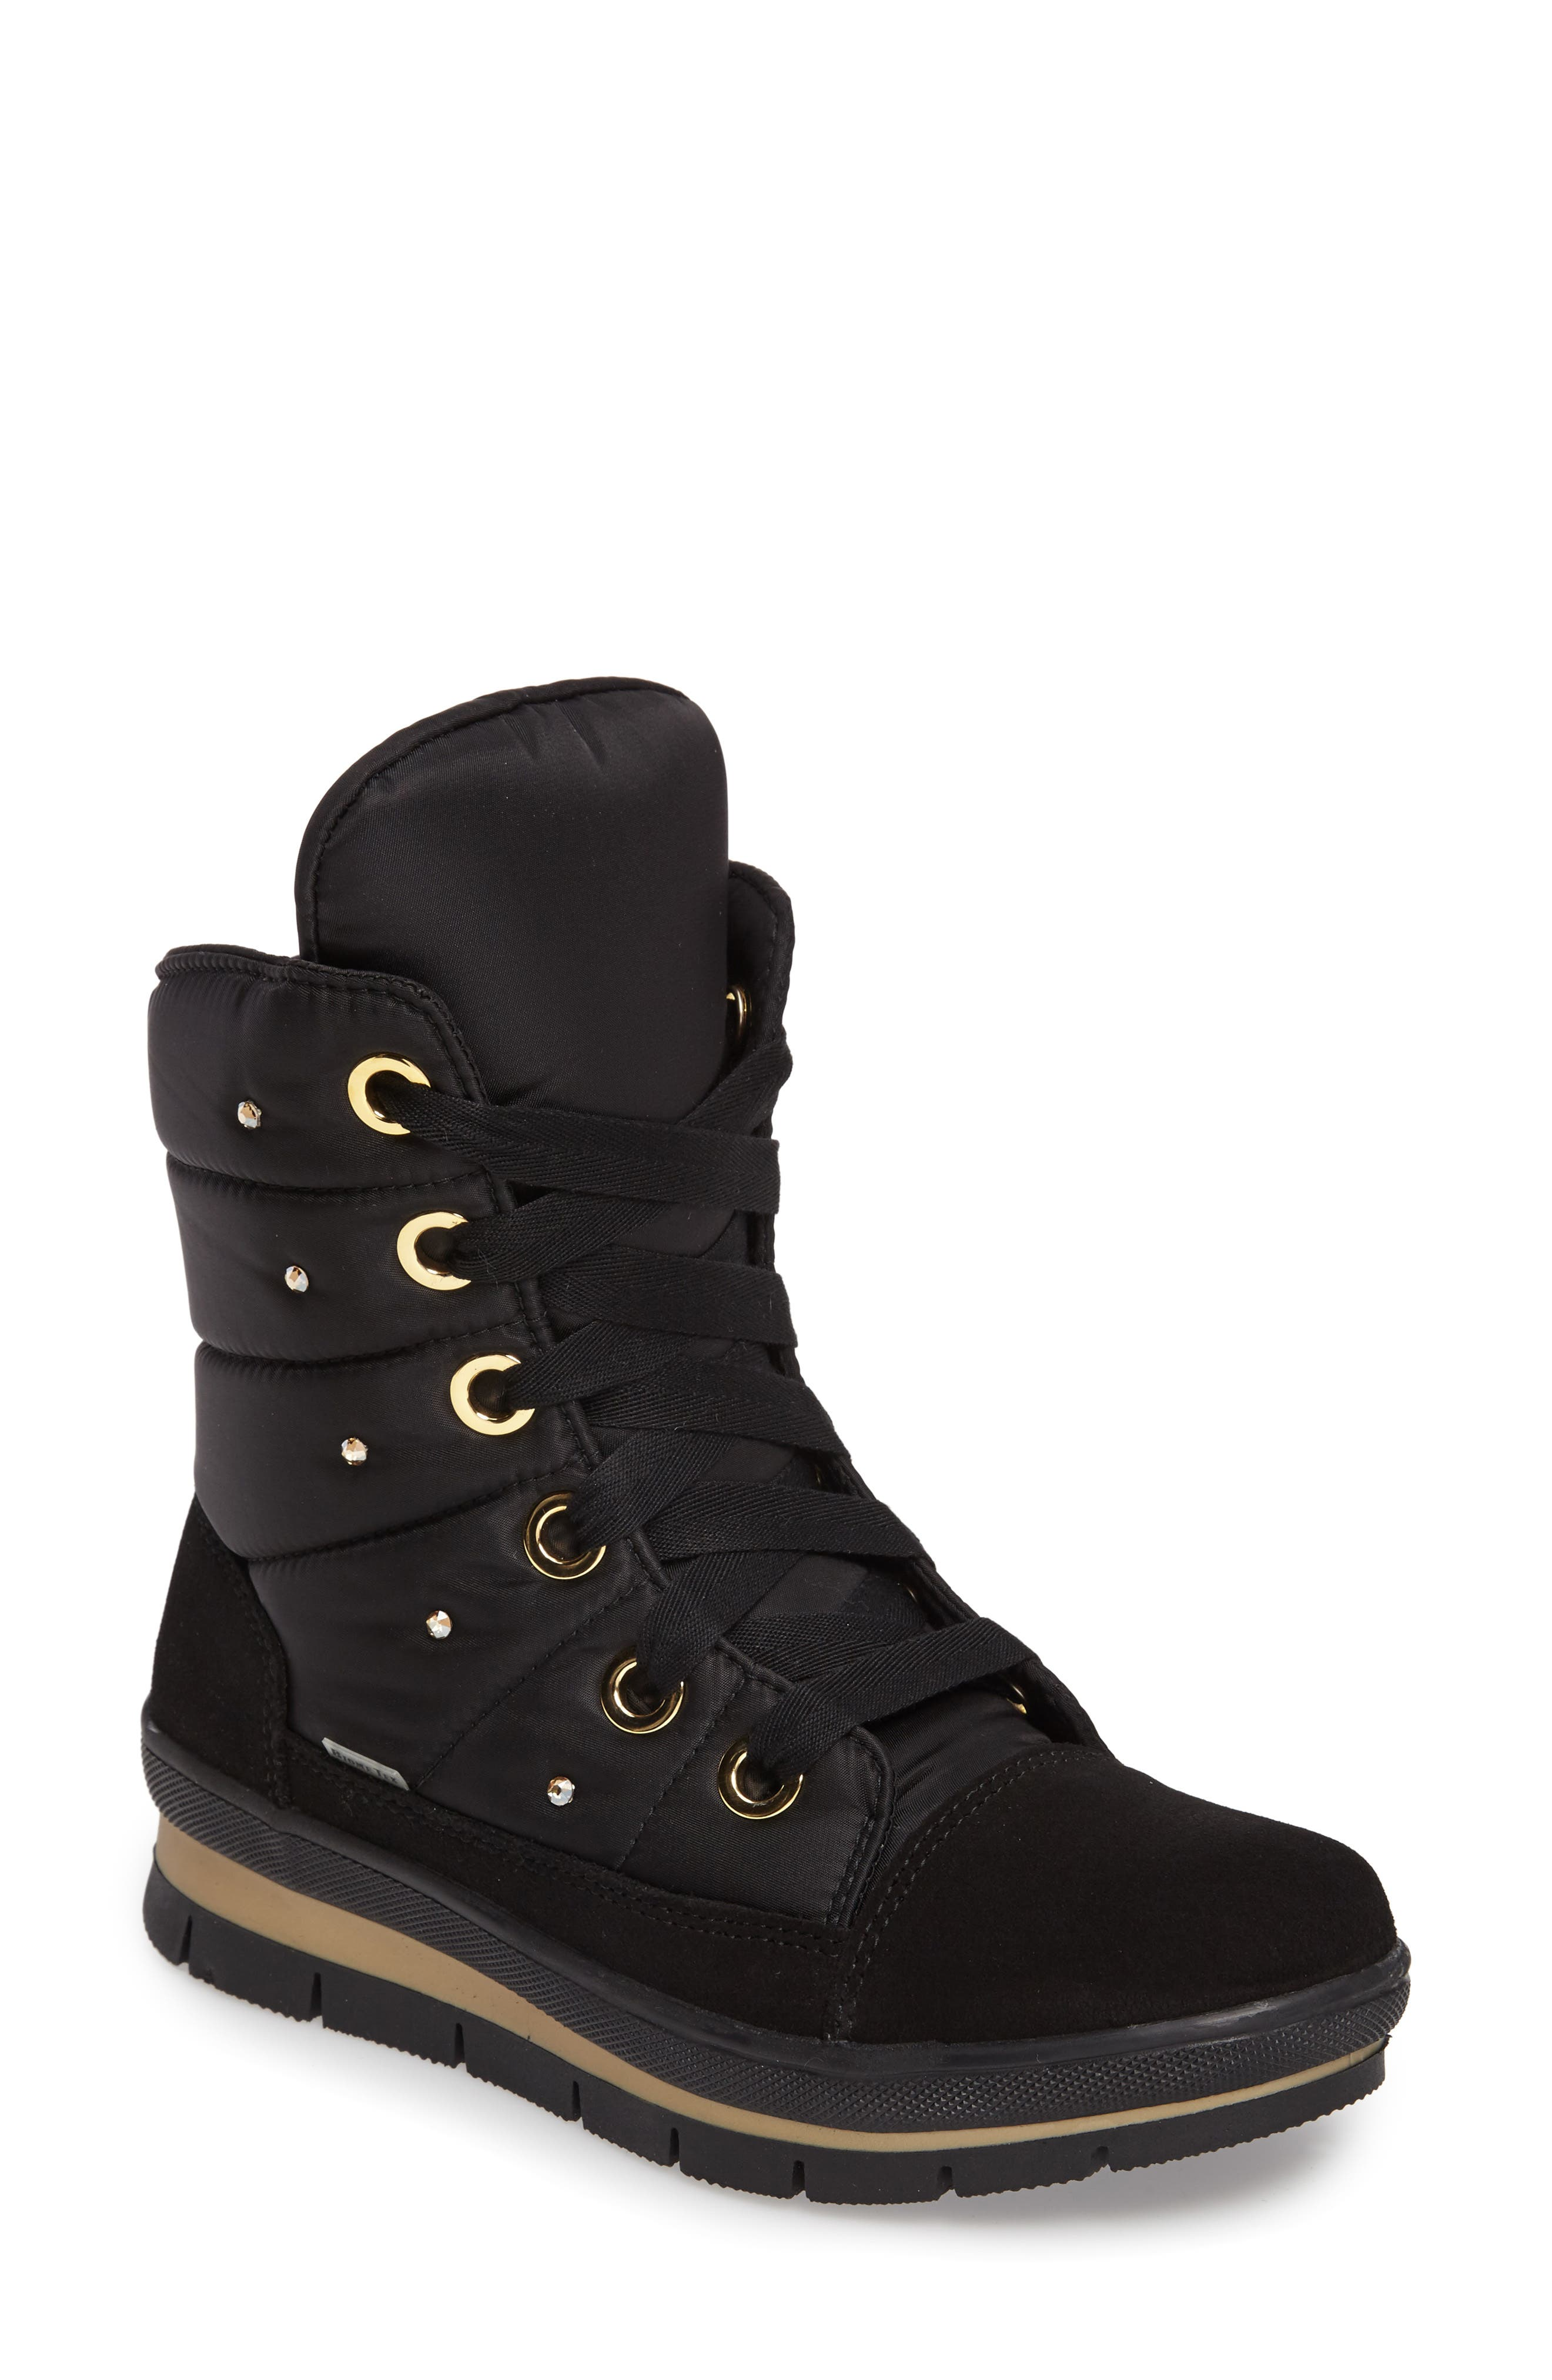 Verbier Waterproof Boot,                             Main thumbnail 1, color,                             BLACK / GOLD SWAROVSKI